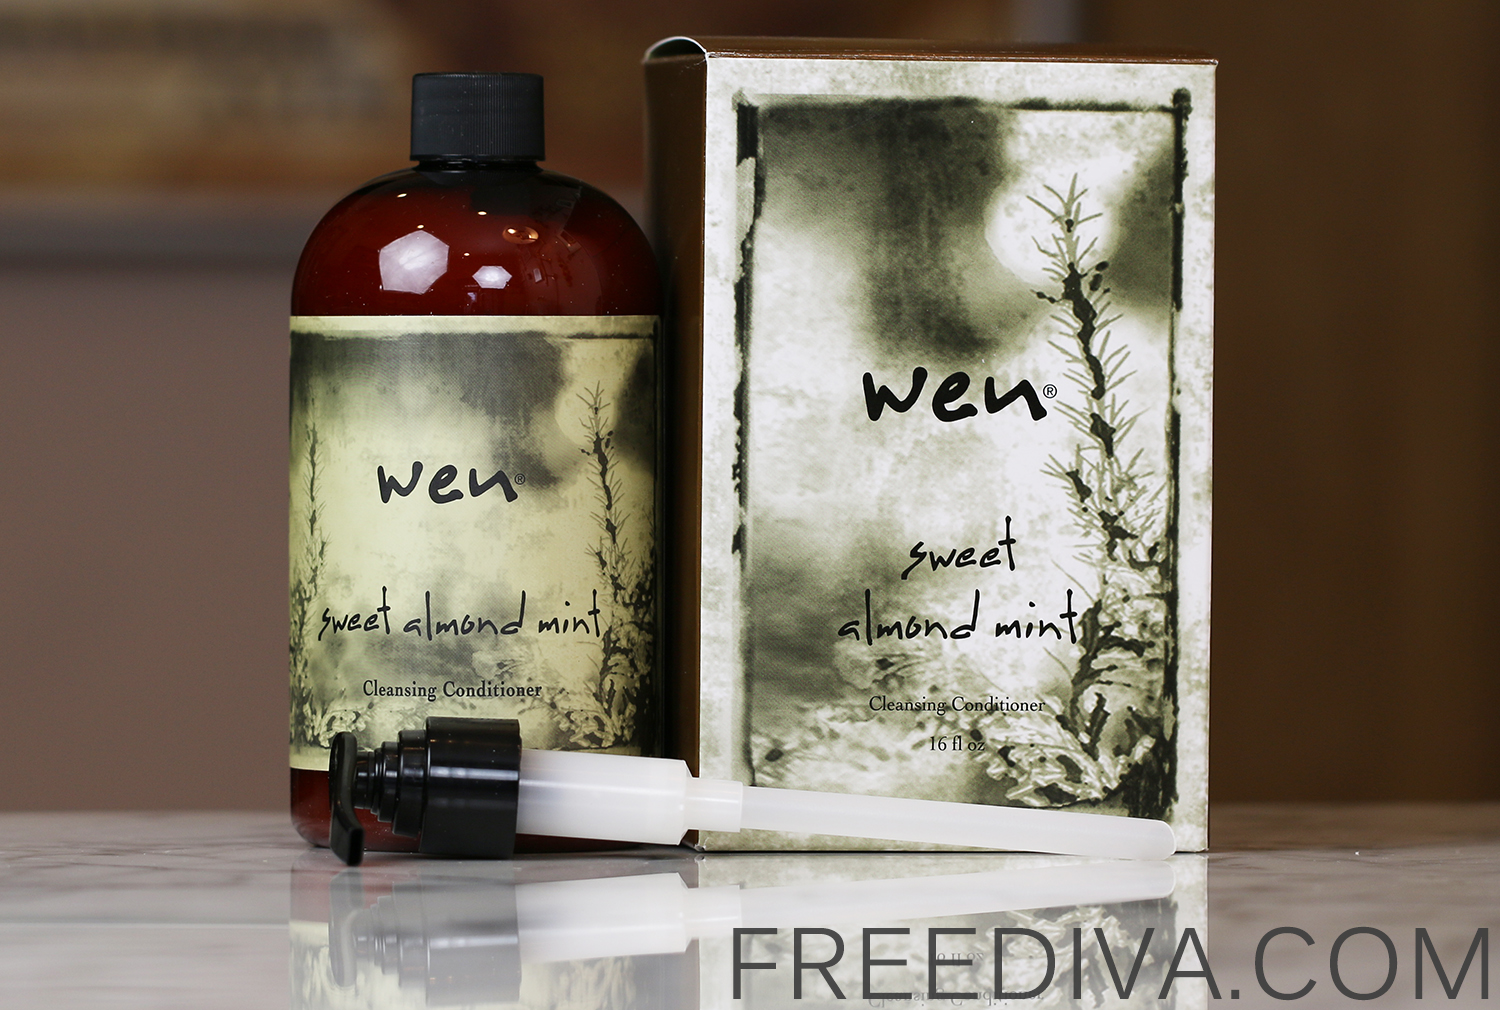 WEN by Chaz Dean Sweet Almond Mint Cleansing Conditioner